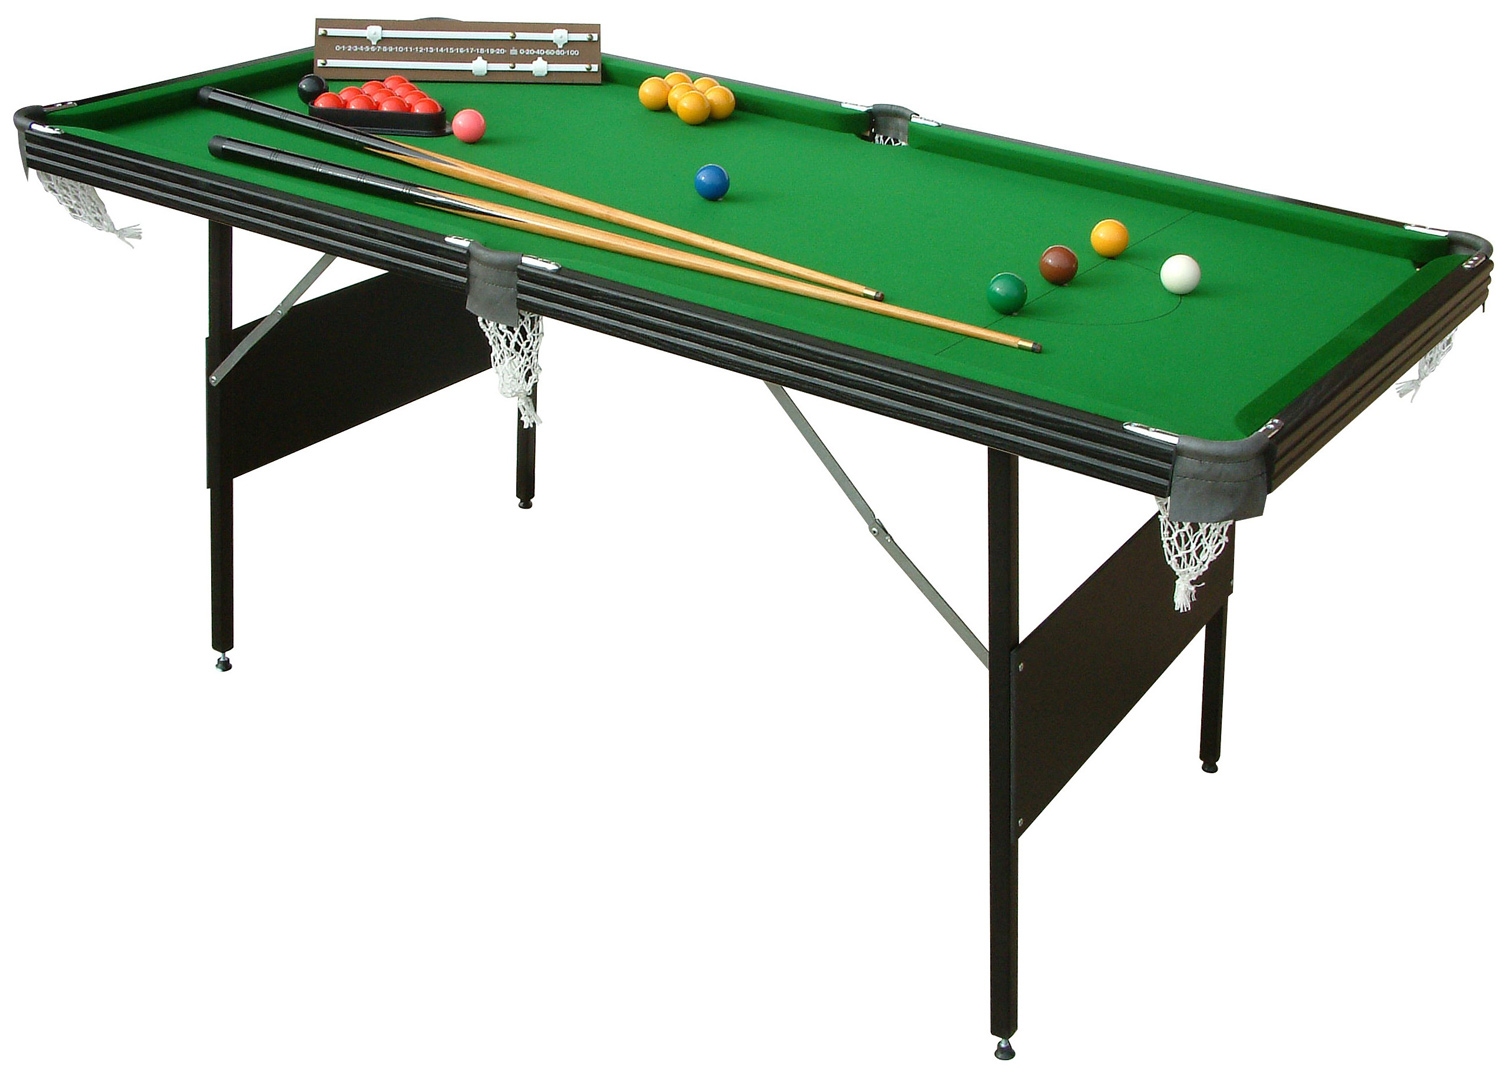 Crucible 6 foot 2 in 1 folding snooker pool table liberty games - Acheter billard table ...